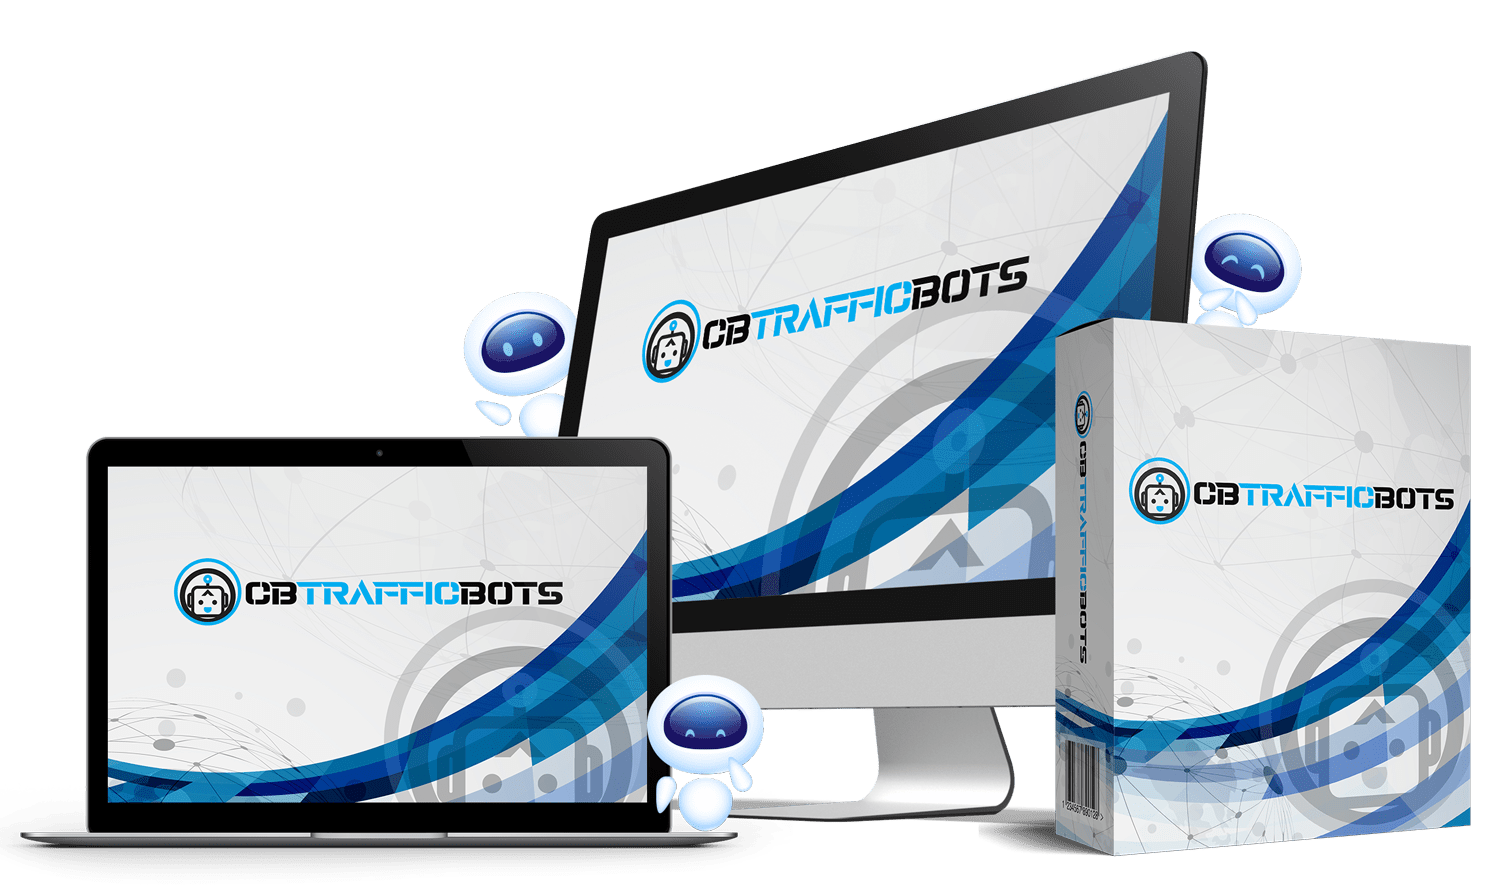 [GET] CB TrafficBots – Make 60x ClickBank Commissions Free Download